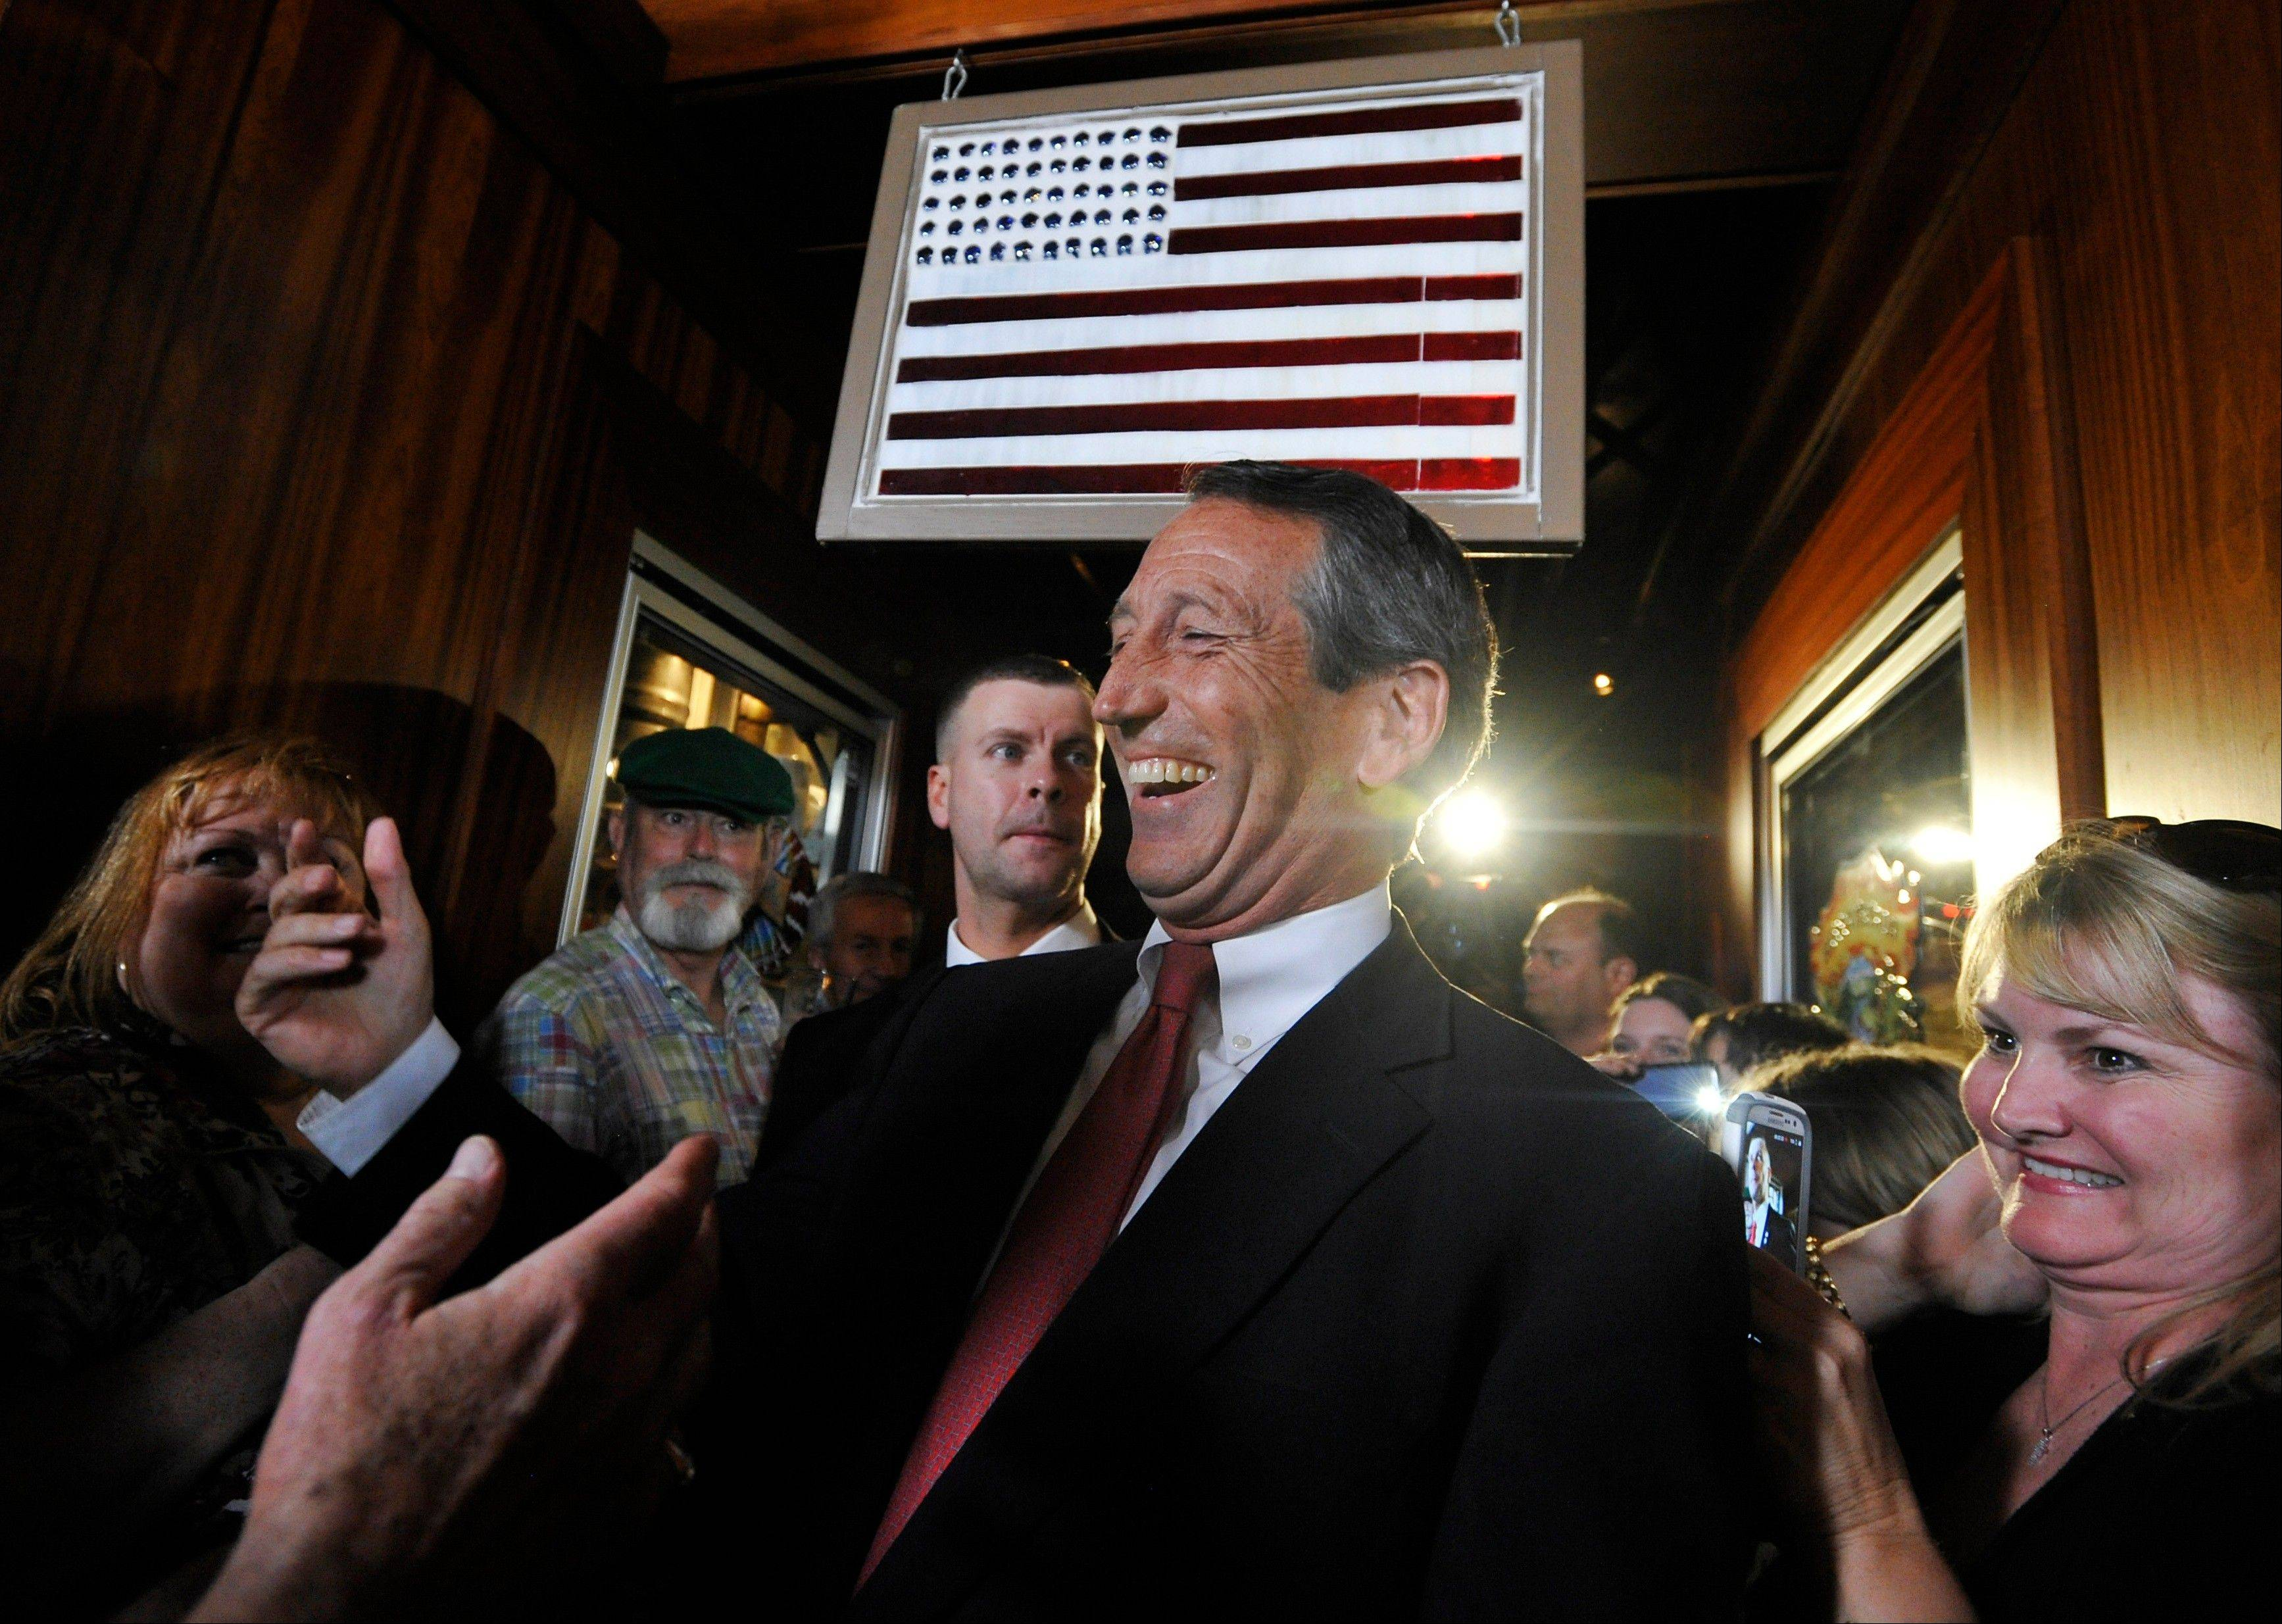 Former South Carolina Gov. Mark Sanford is greeted by supporters as he arrives to give his victory speech on Tuesday, May 7, 2013, in Mt. Pleasant, S.C. Sanford won back his old congressional seat in the state�s 1st District in a special election.